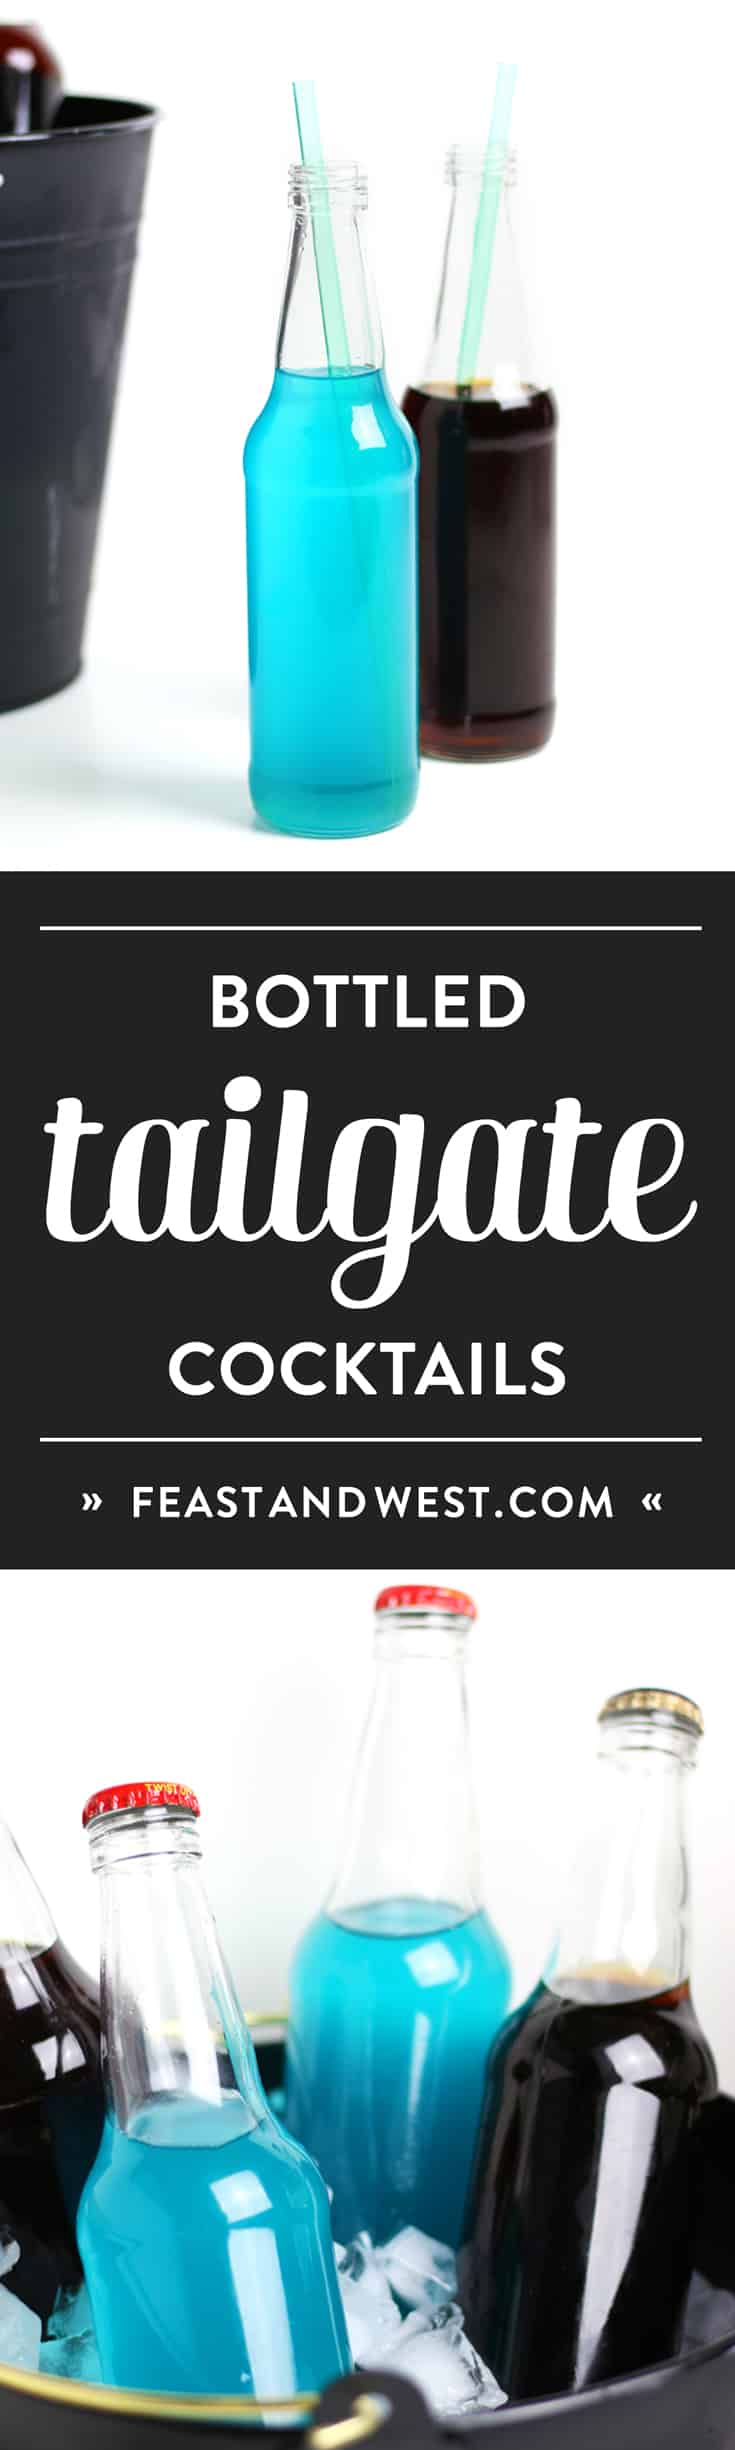 Ever wanted to take cocktails to a tailgate? Make them ahead of time! These black and blue Bottled Tailgate Cocktails are pre-mixed drinks you can pack in a cooler for your next football pre-game party. (via feastandwest.com)